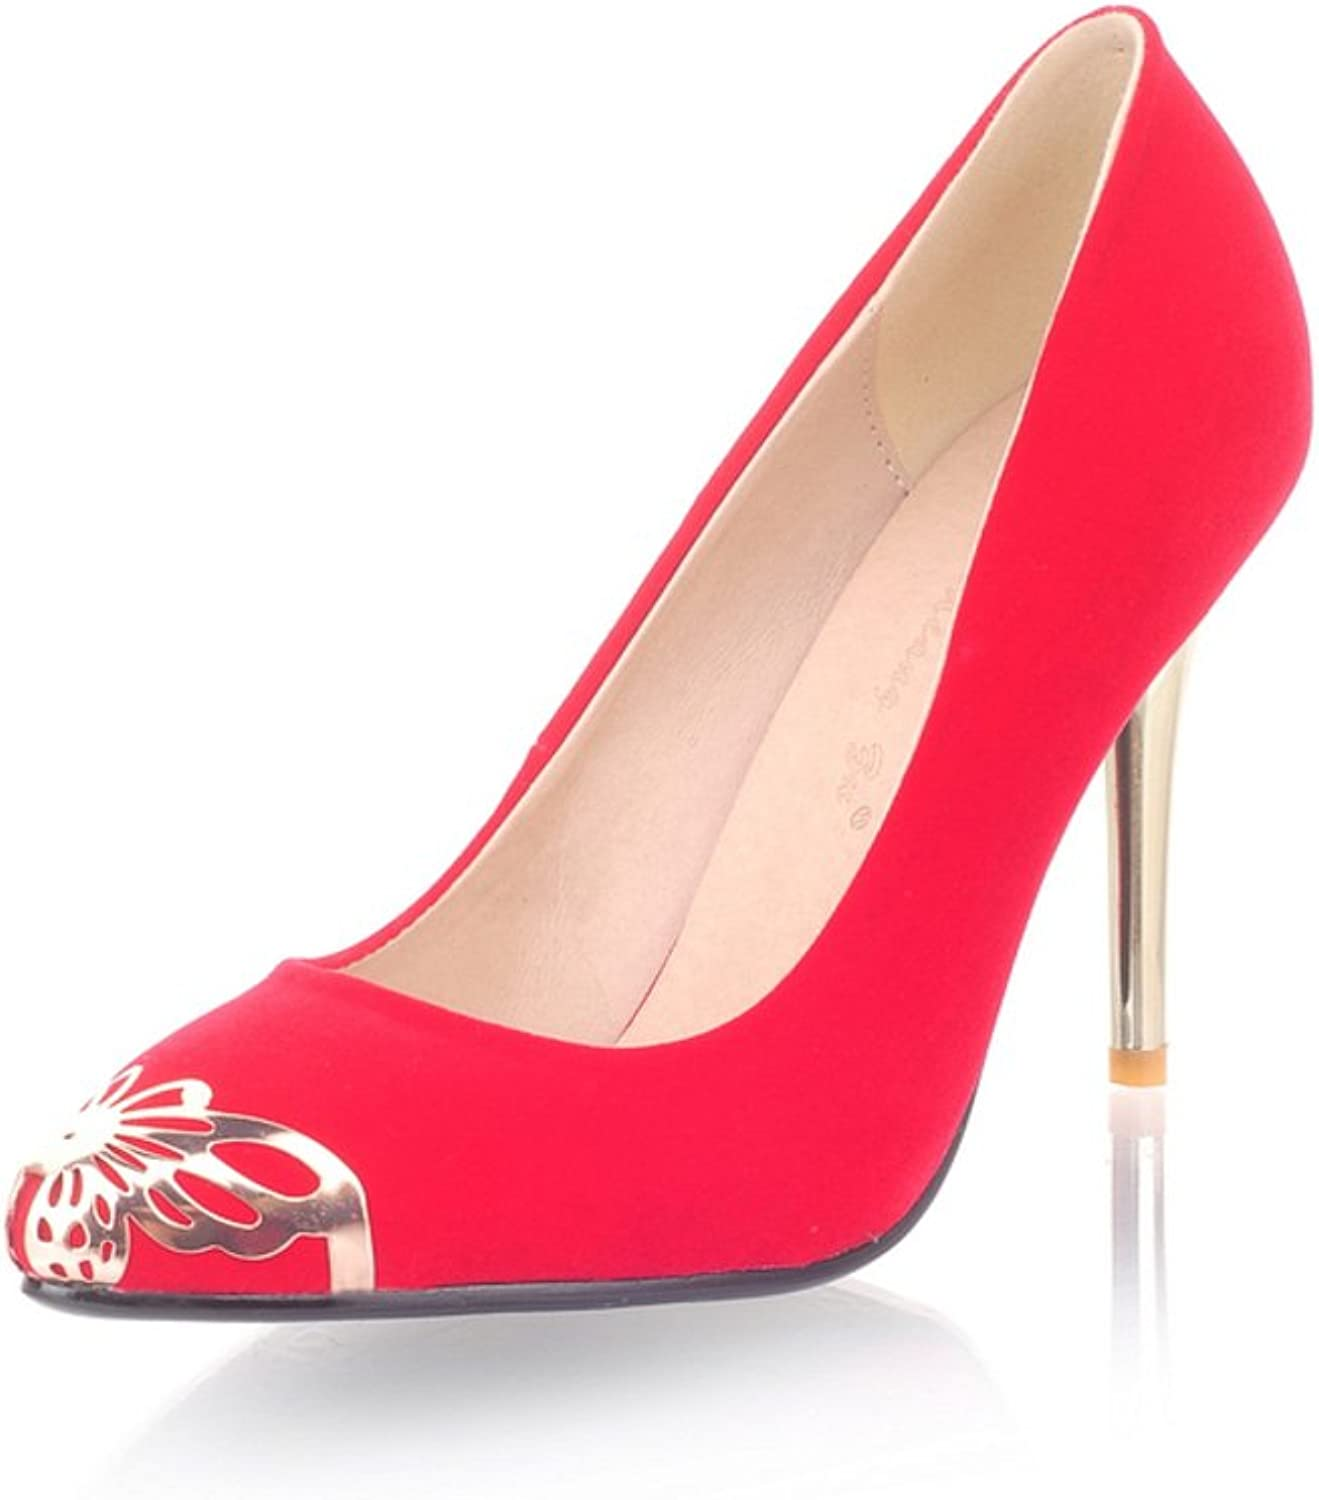 RHFDVGDS Spring and autumn fashion Lady shoes high heel pointy shoes Fine with light shoes sweet lady in high heels